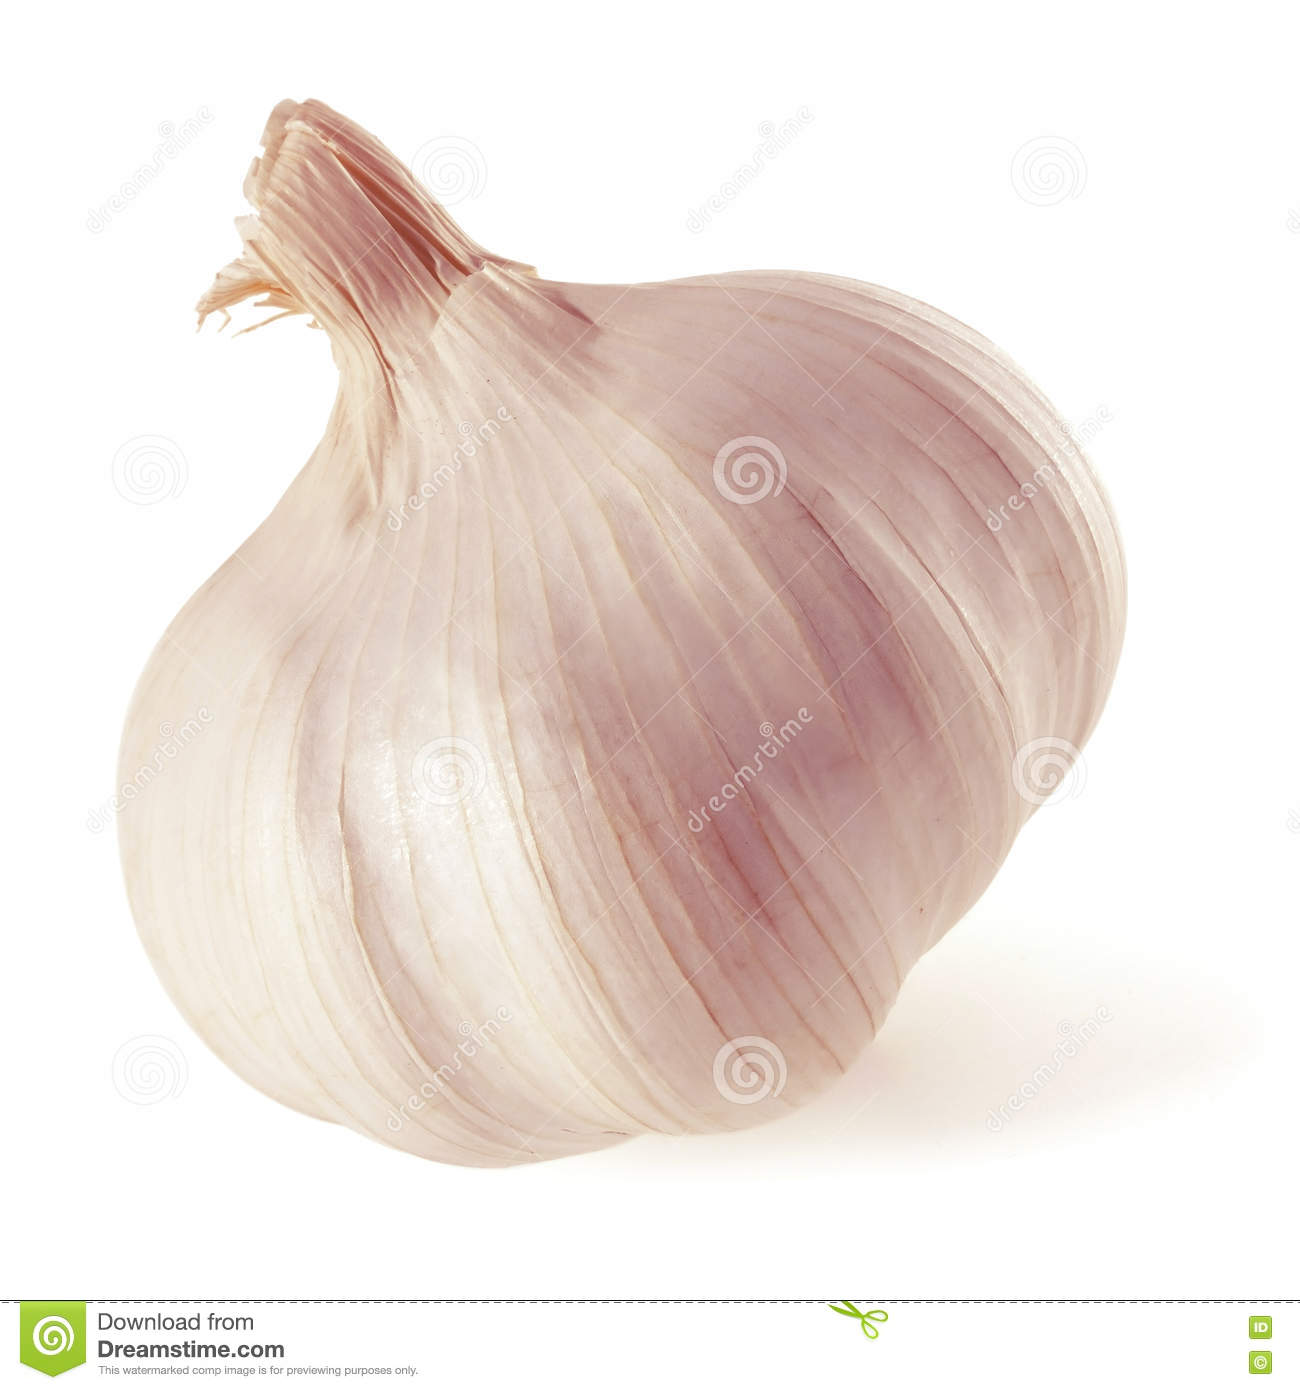 Garlic. Whole head of garlic.